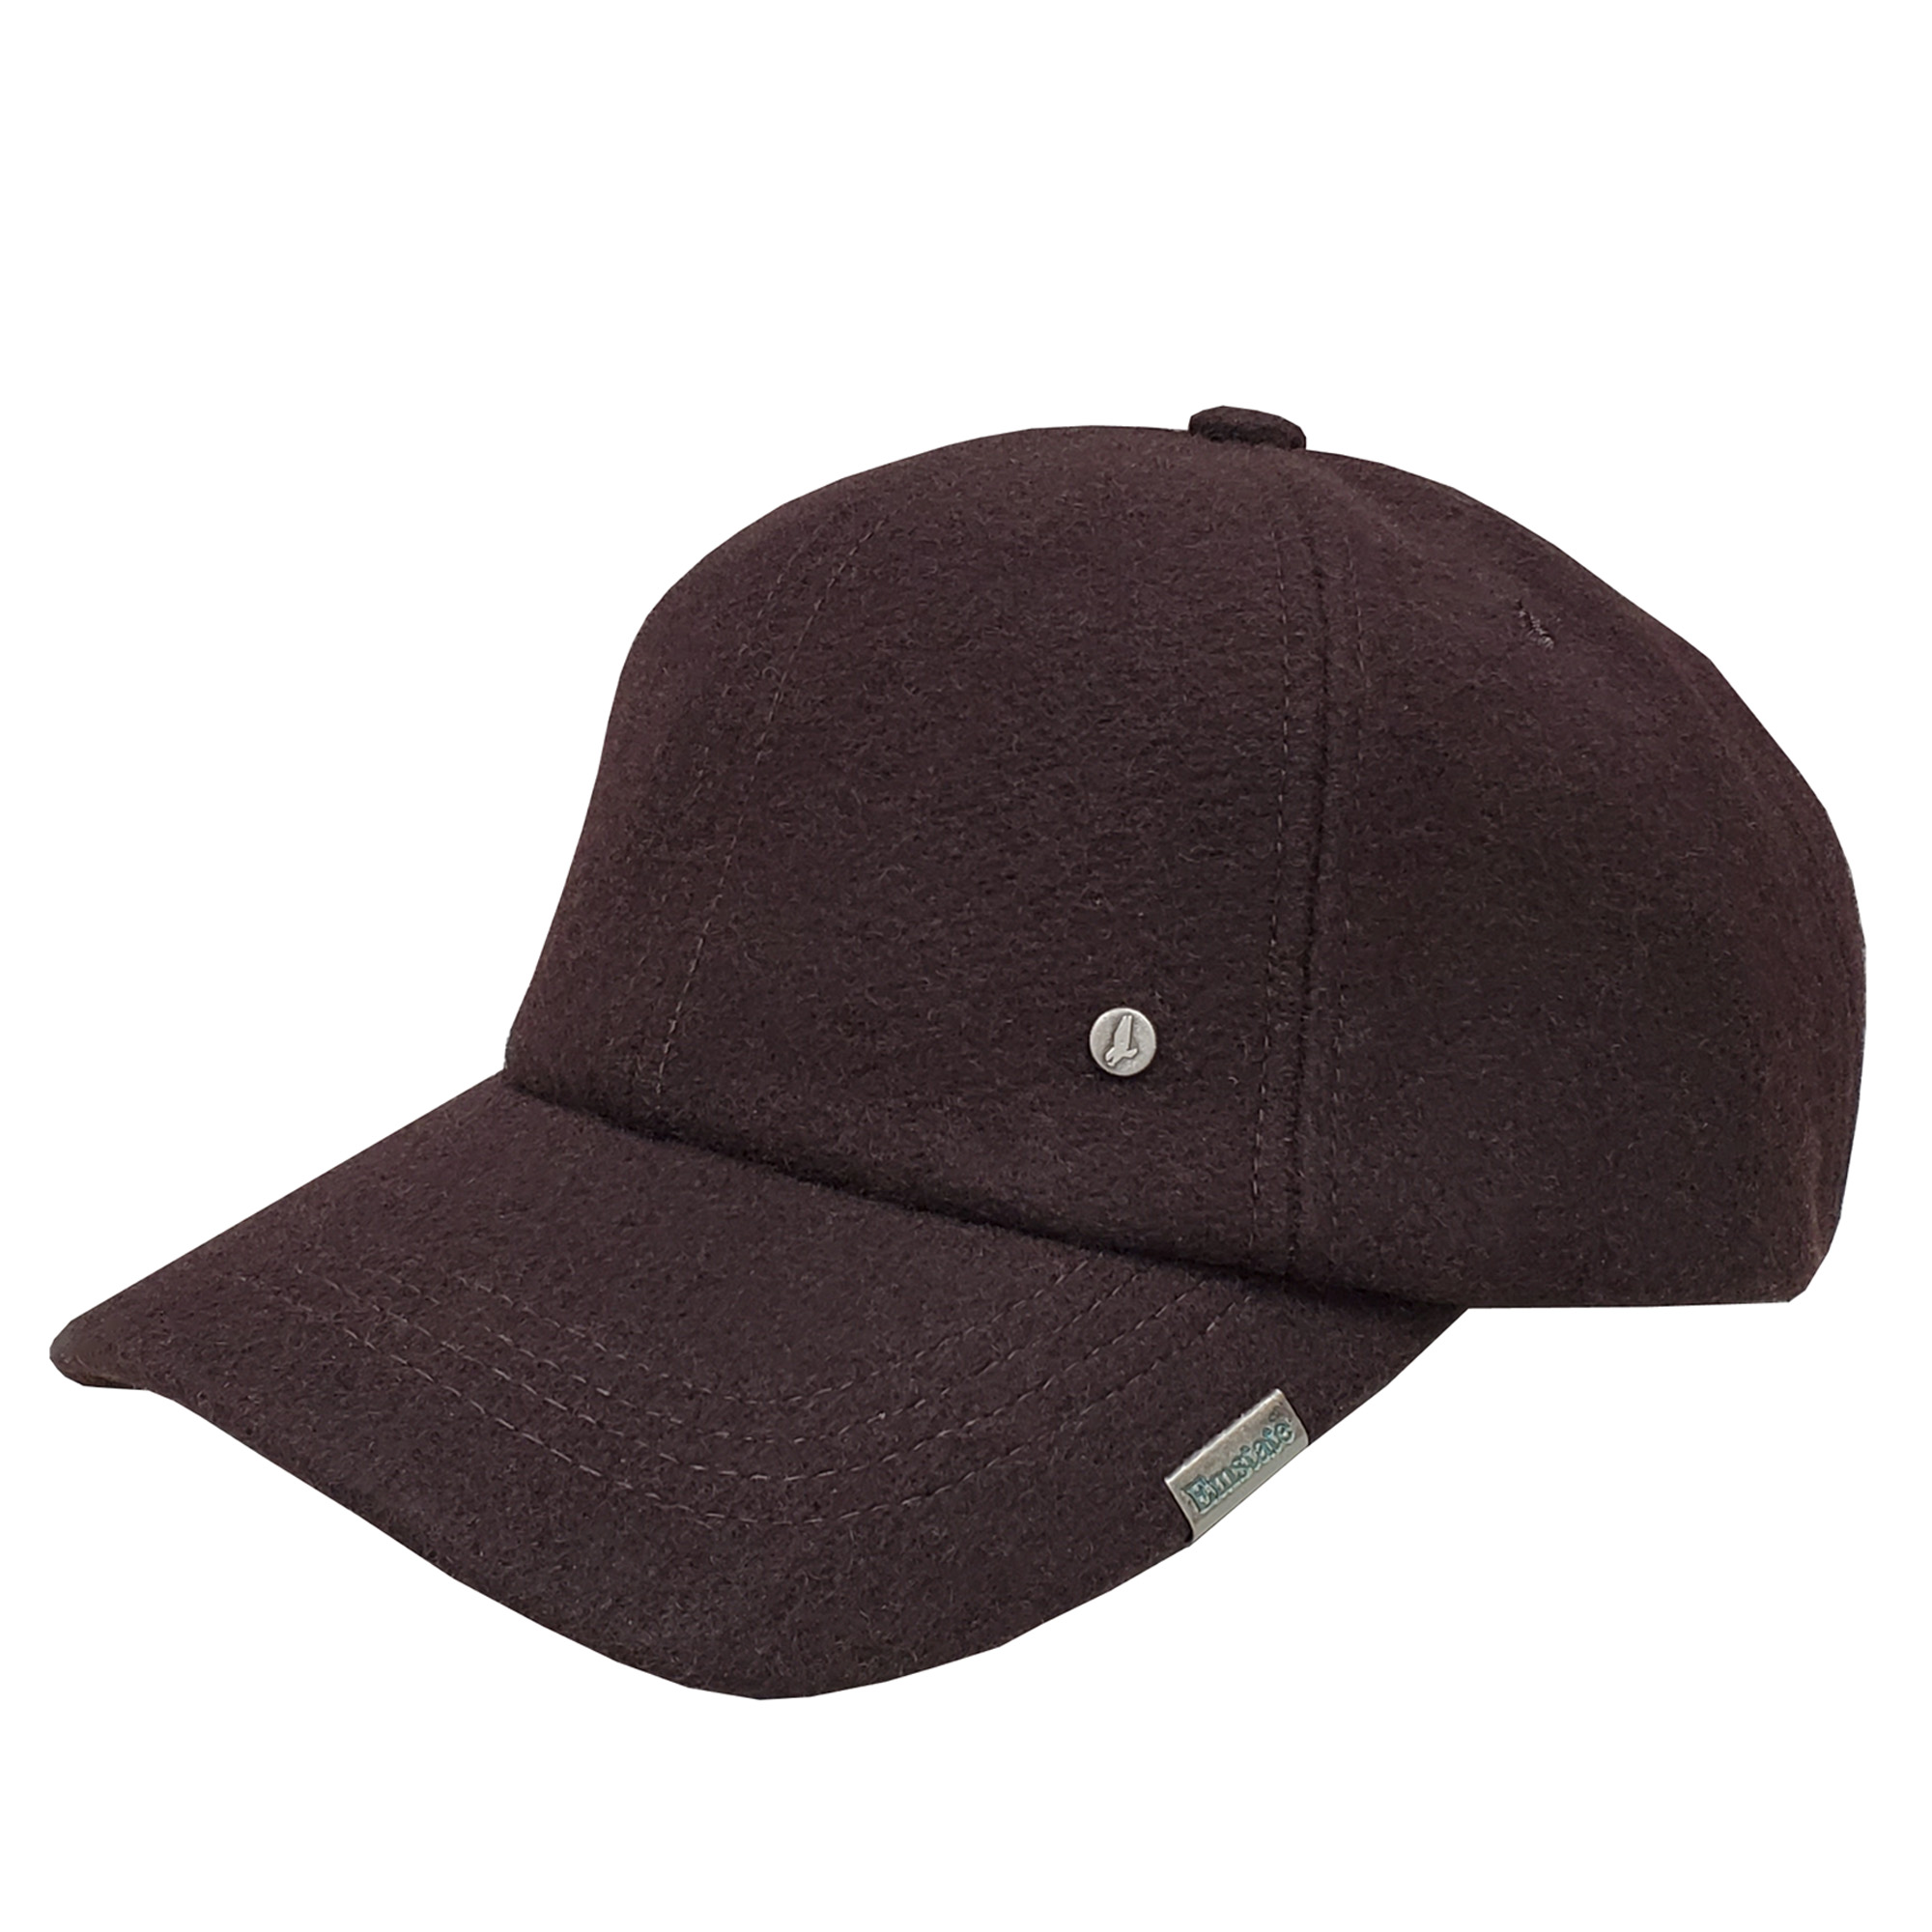 Emstate Brown Melton Wool Baseball Cap